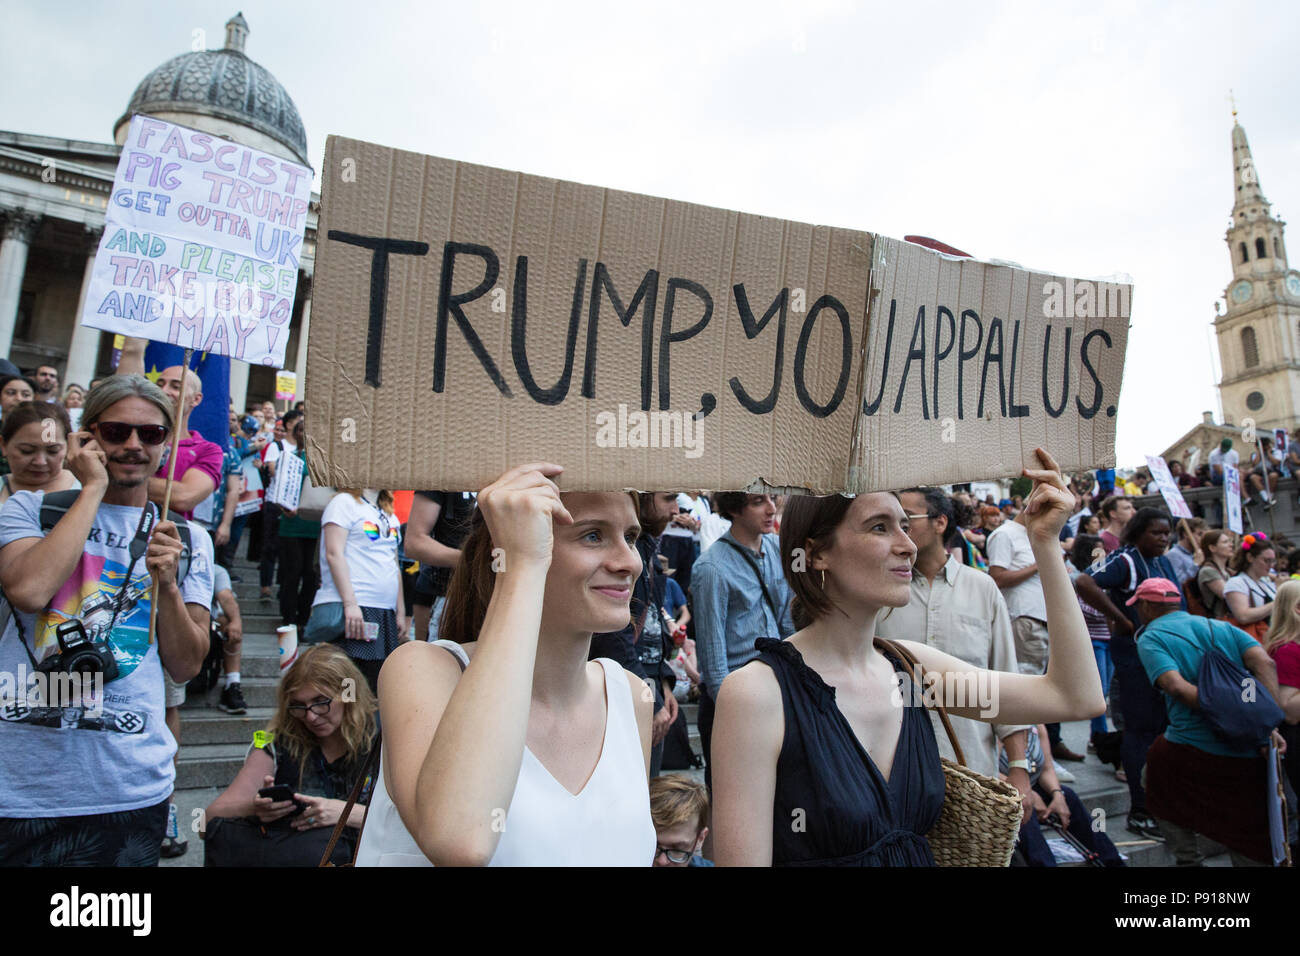 London, UK. 13th July, 2018. Over 100,000 people attend the Together Against Trump national demonstration rally in Trafalgar Square in protest against the visit to the UK of US President Donald Trump. Protests also took place at all venues in the UK visited by the US President and a large policing operation was in place at all protest sites. Credit: Mark Kerrison/Alamy Live News - Stock Image